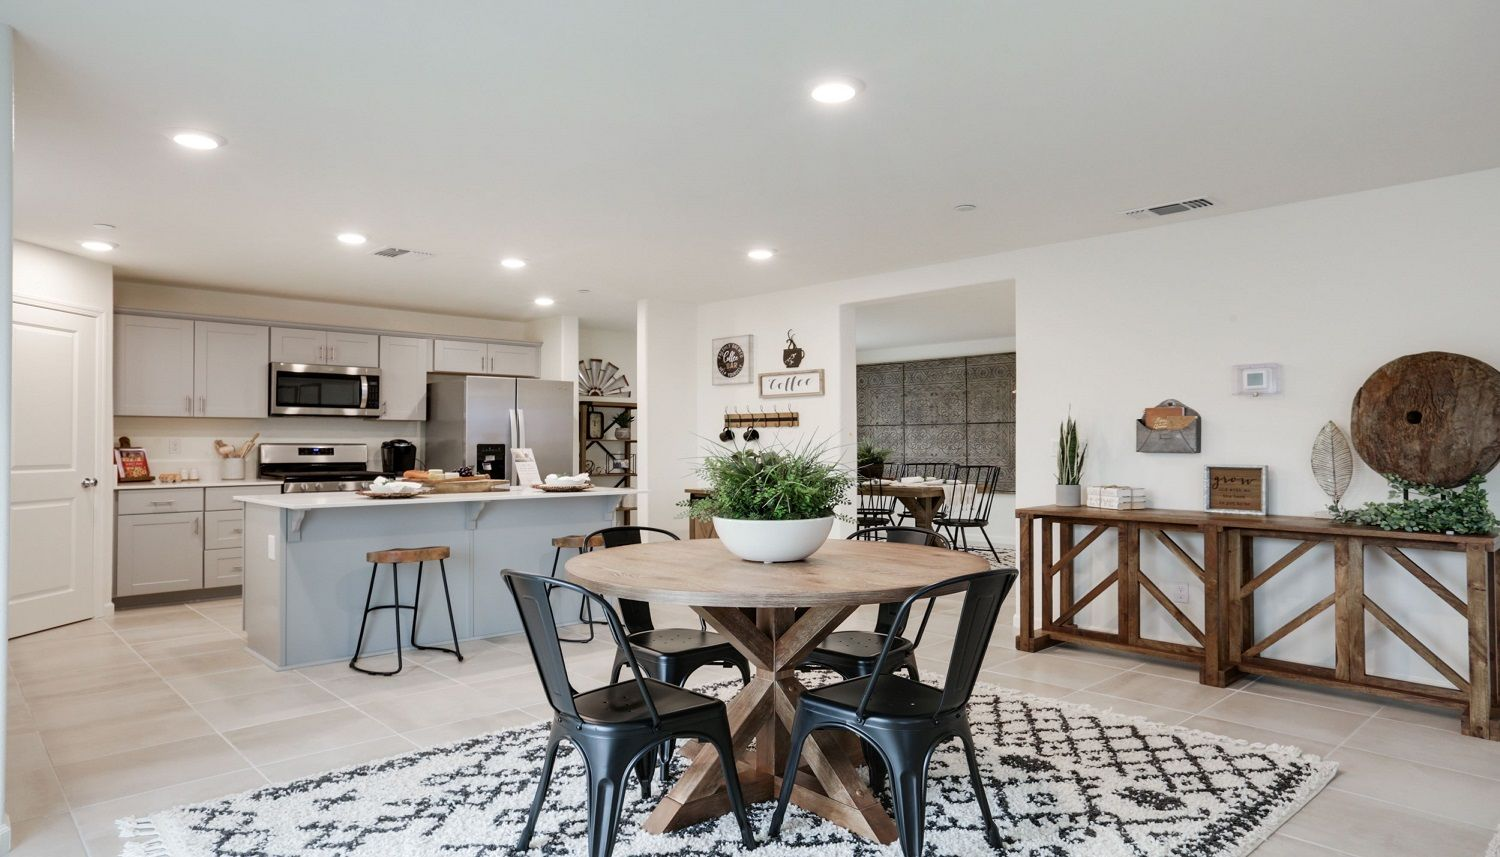 Kitchen featured in the Monroe By D.R. Horton in Bakersfield, CA